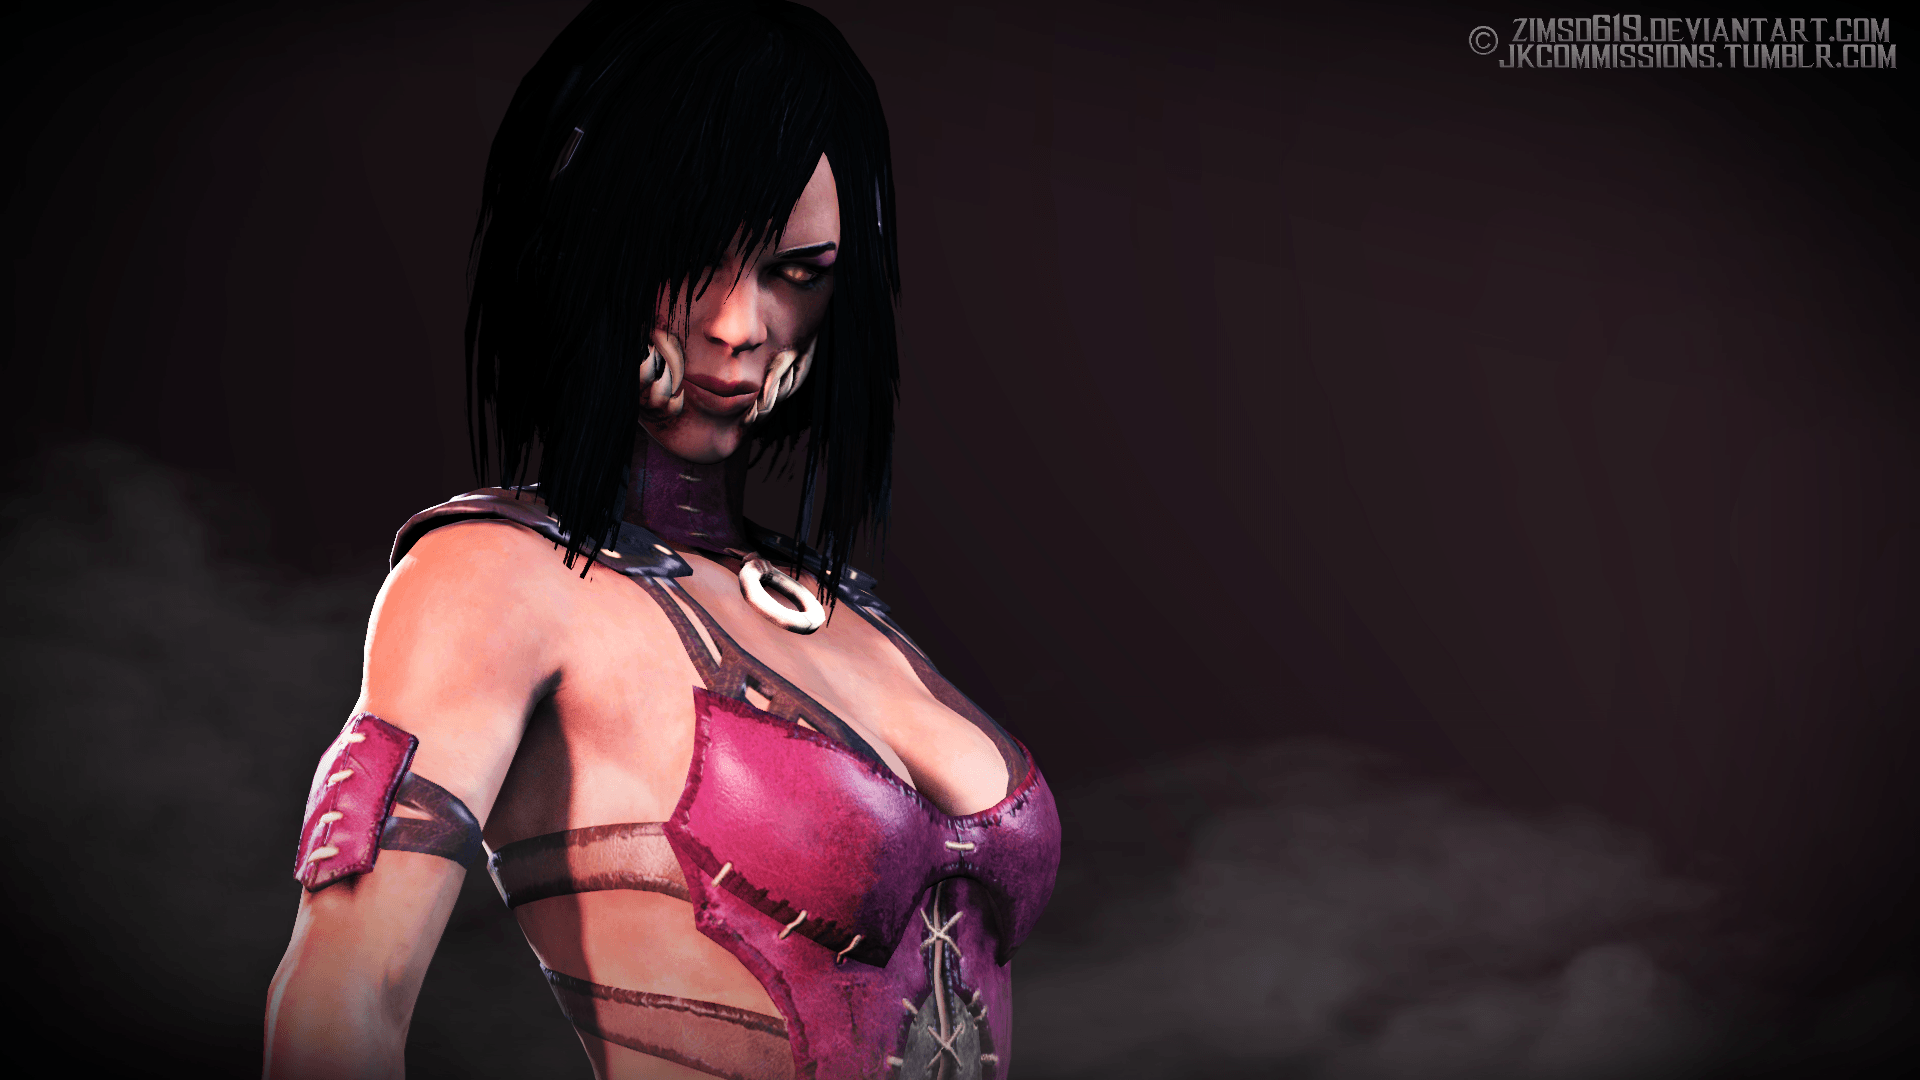 Mileena By Zimsd619 On DeviantArt